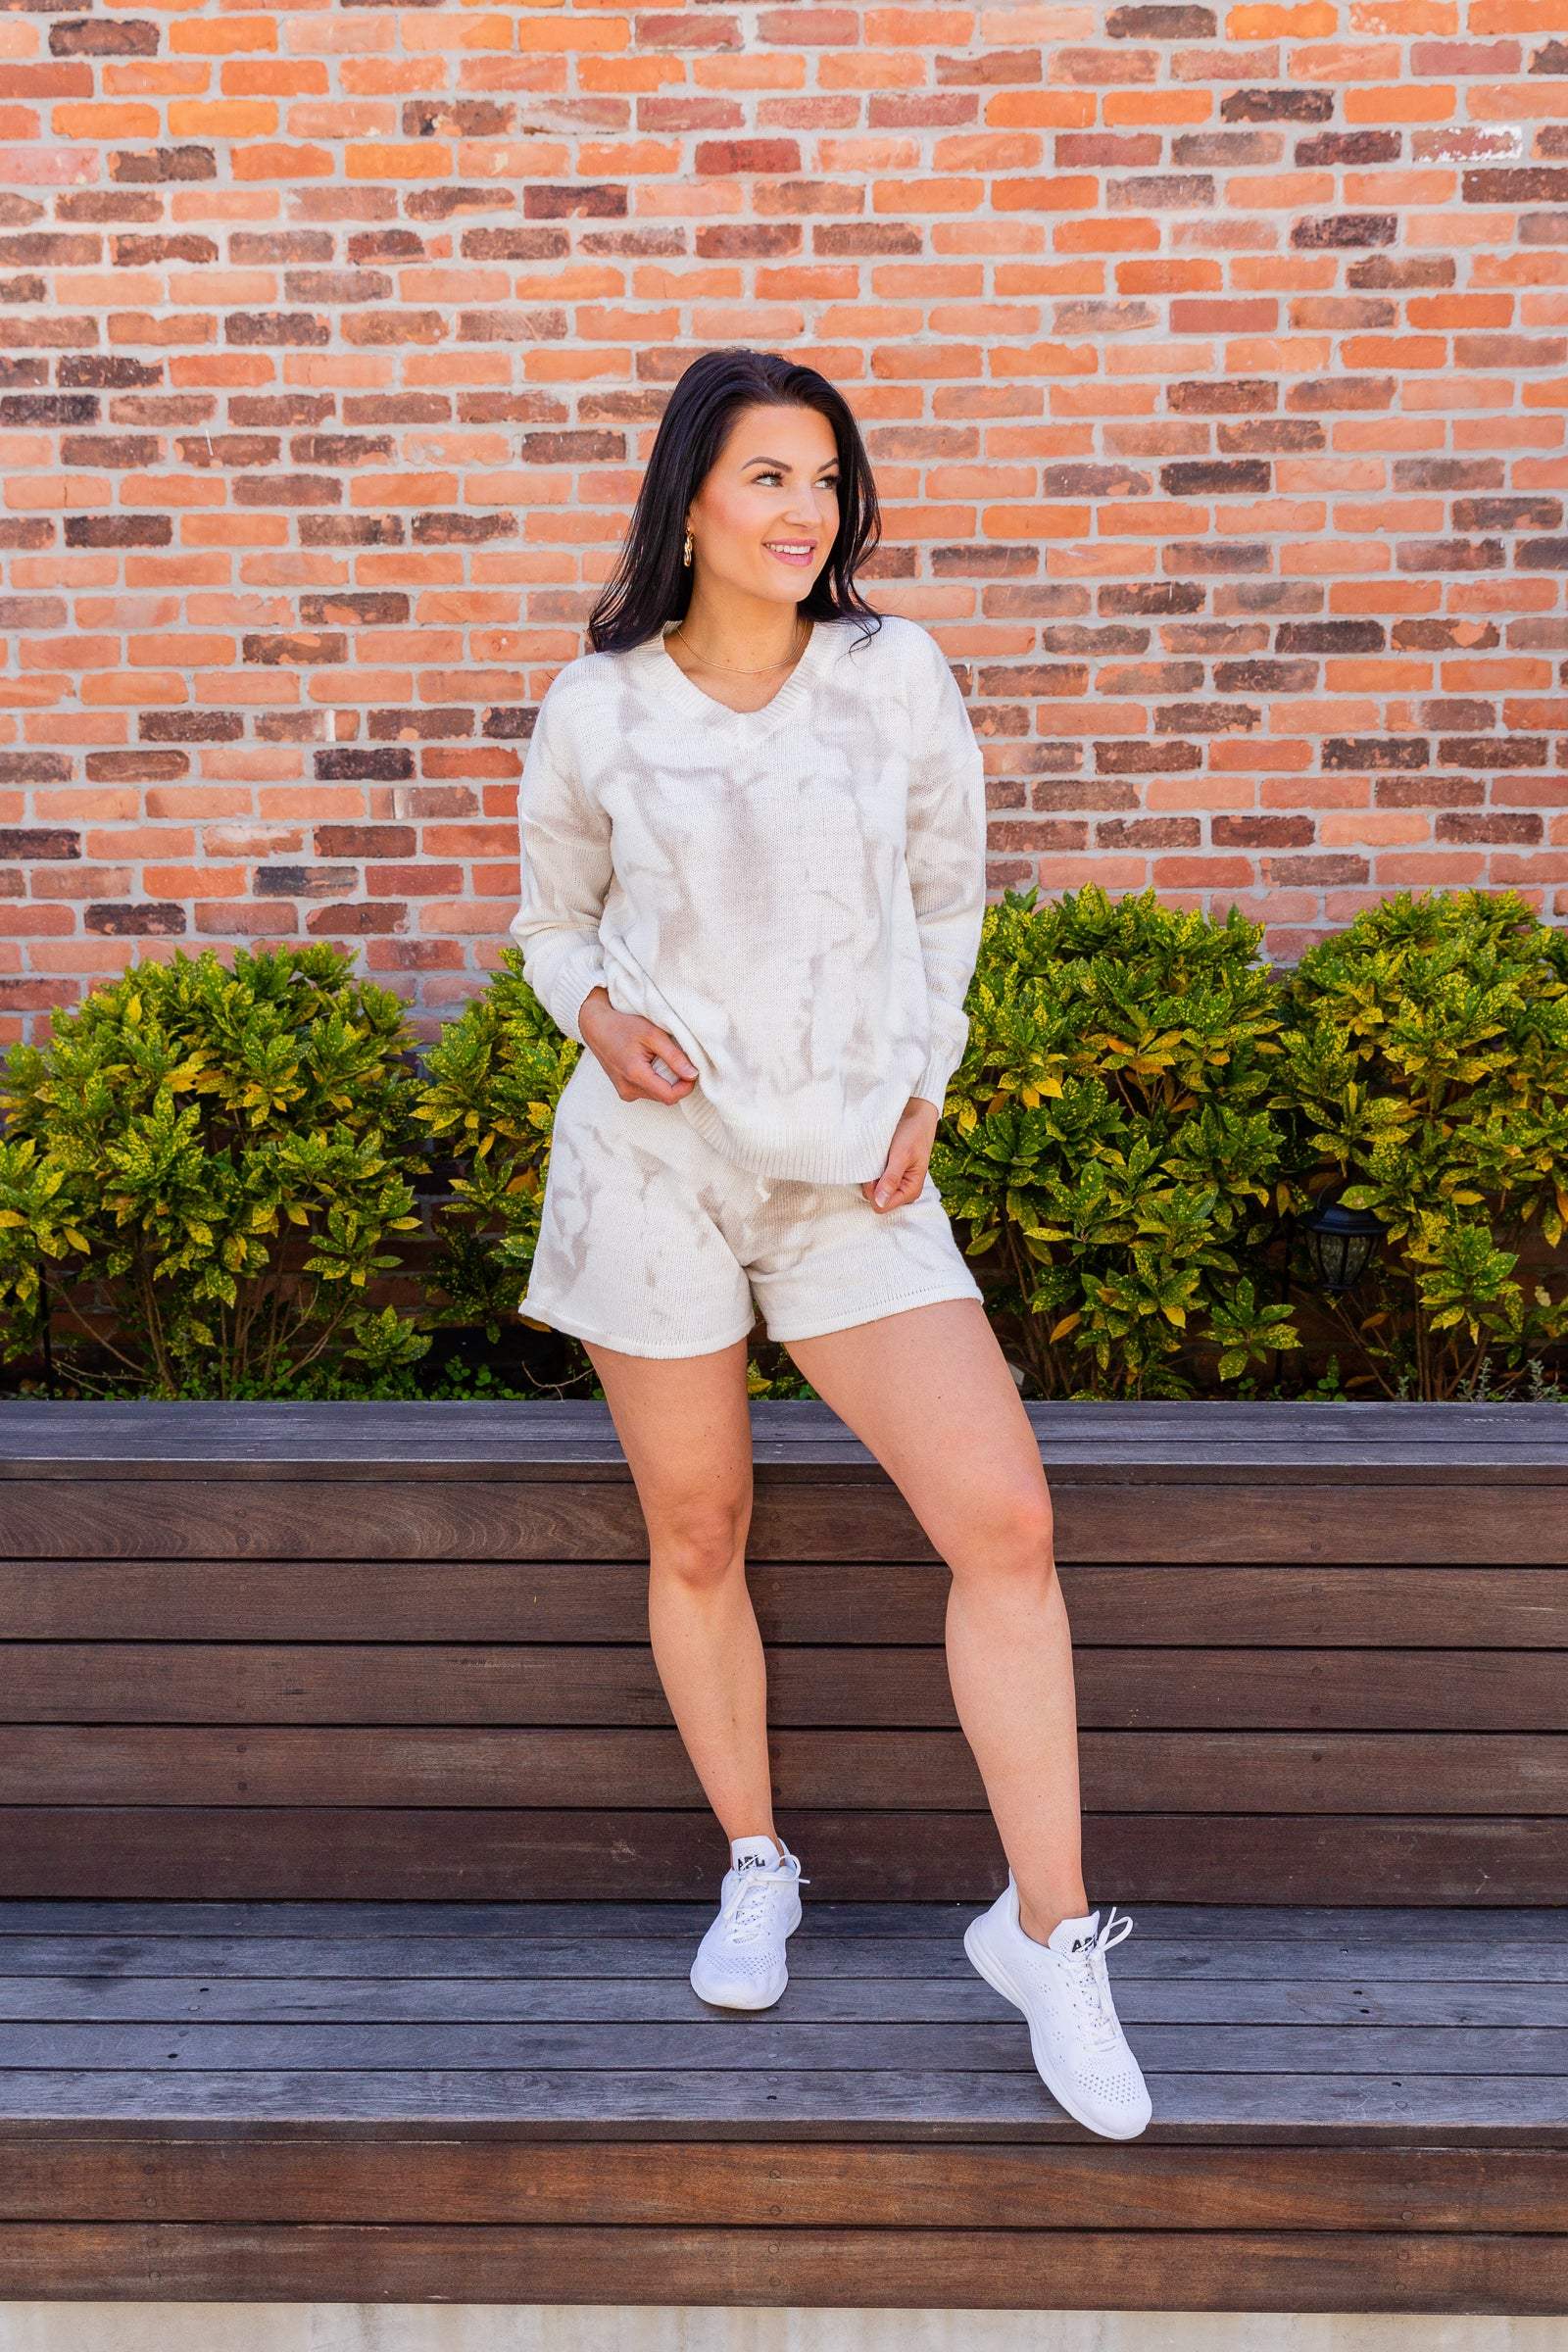 Taupe tie-dye prints cover the fabric of this pullover top. It has long sleeves that attach to a banded v-neckline on an oversized and knit bodice.